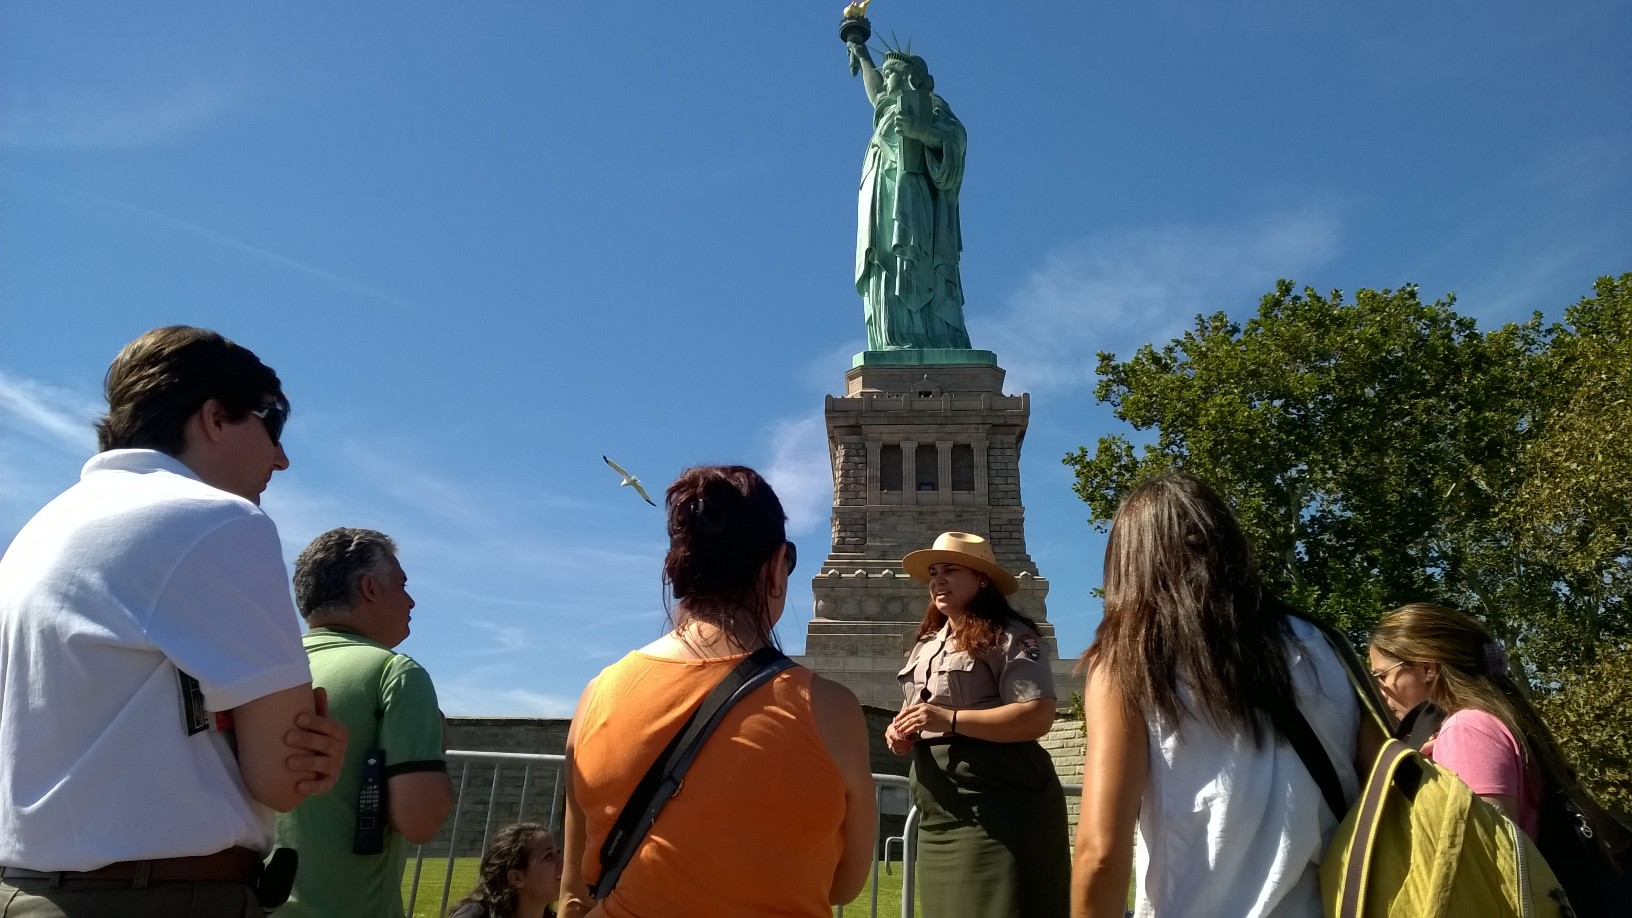 NPS Ranger with visitors during tour about the Statue of Liberty